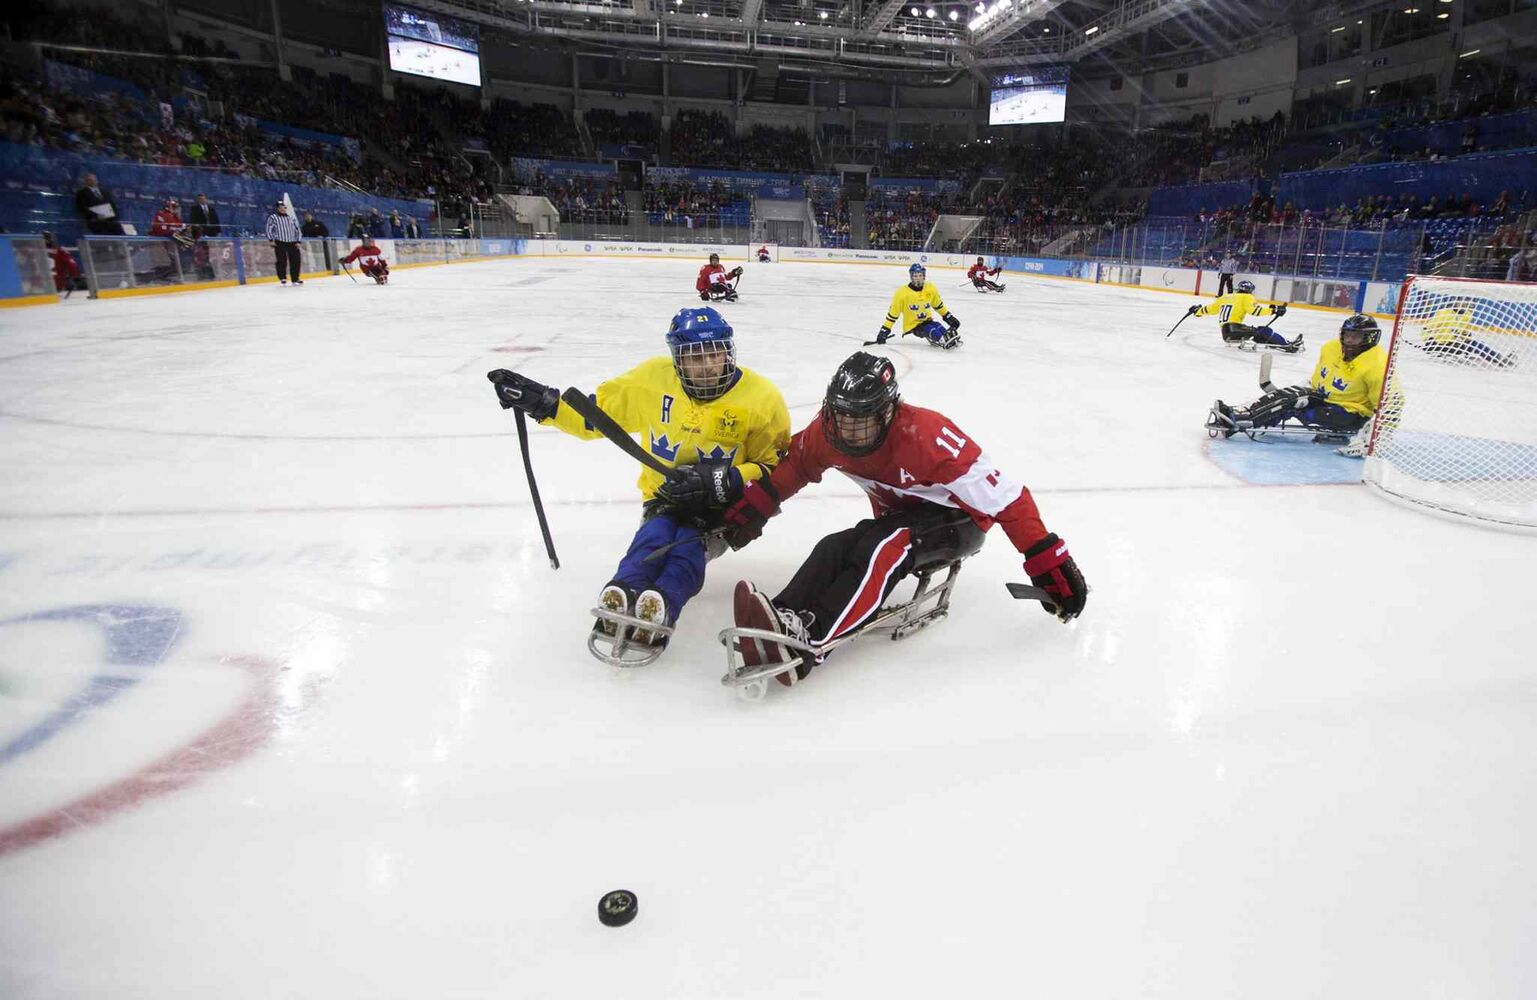 Marcus Holm of Sweden, center left, and Adam Dixon of Canada, center right, chase the puck during the ice sledge hockey match at the Shayba Arena at the 2014 Winter Paralympics in Sochi, Russia, Saturday, March 8, 2014.   (Pavel Golovkin / The Associated Press)